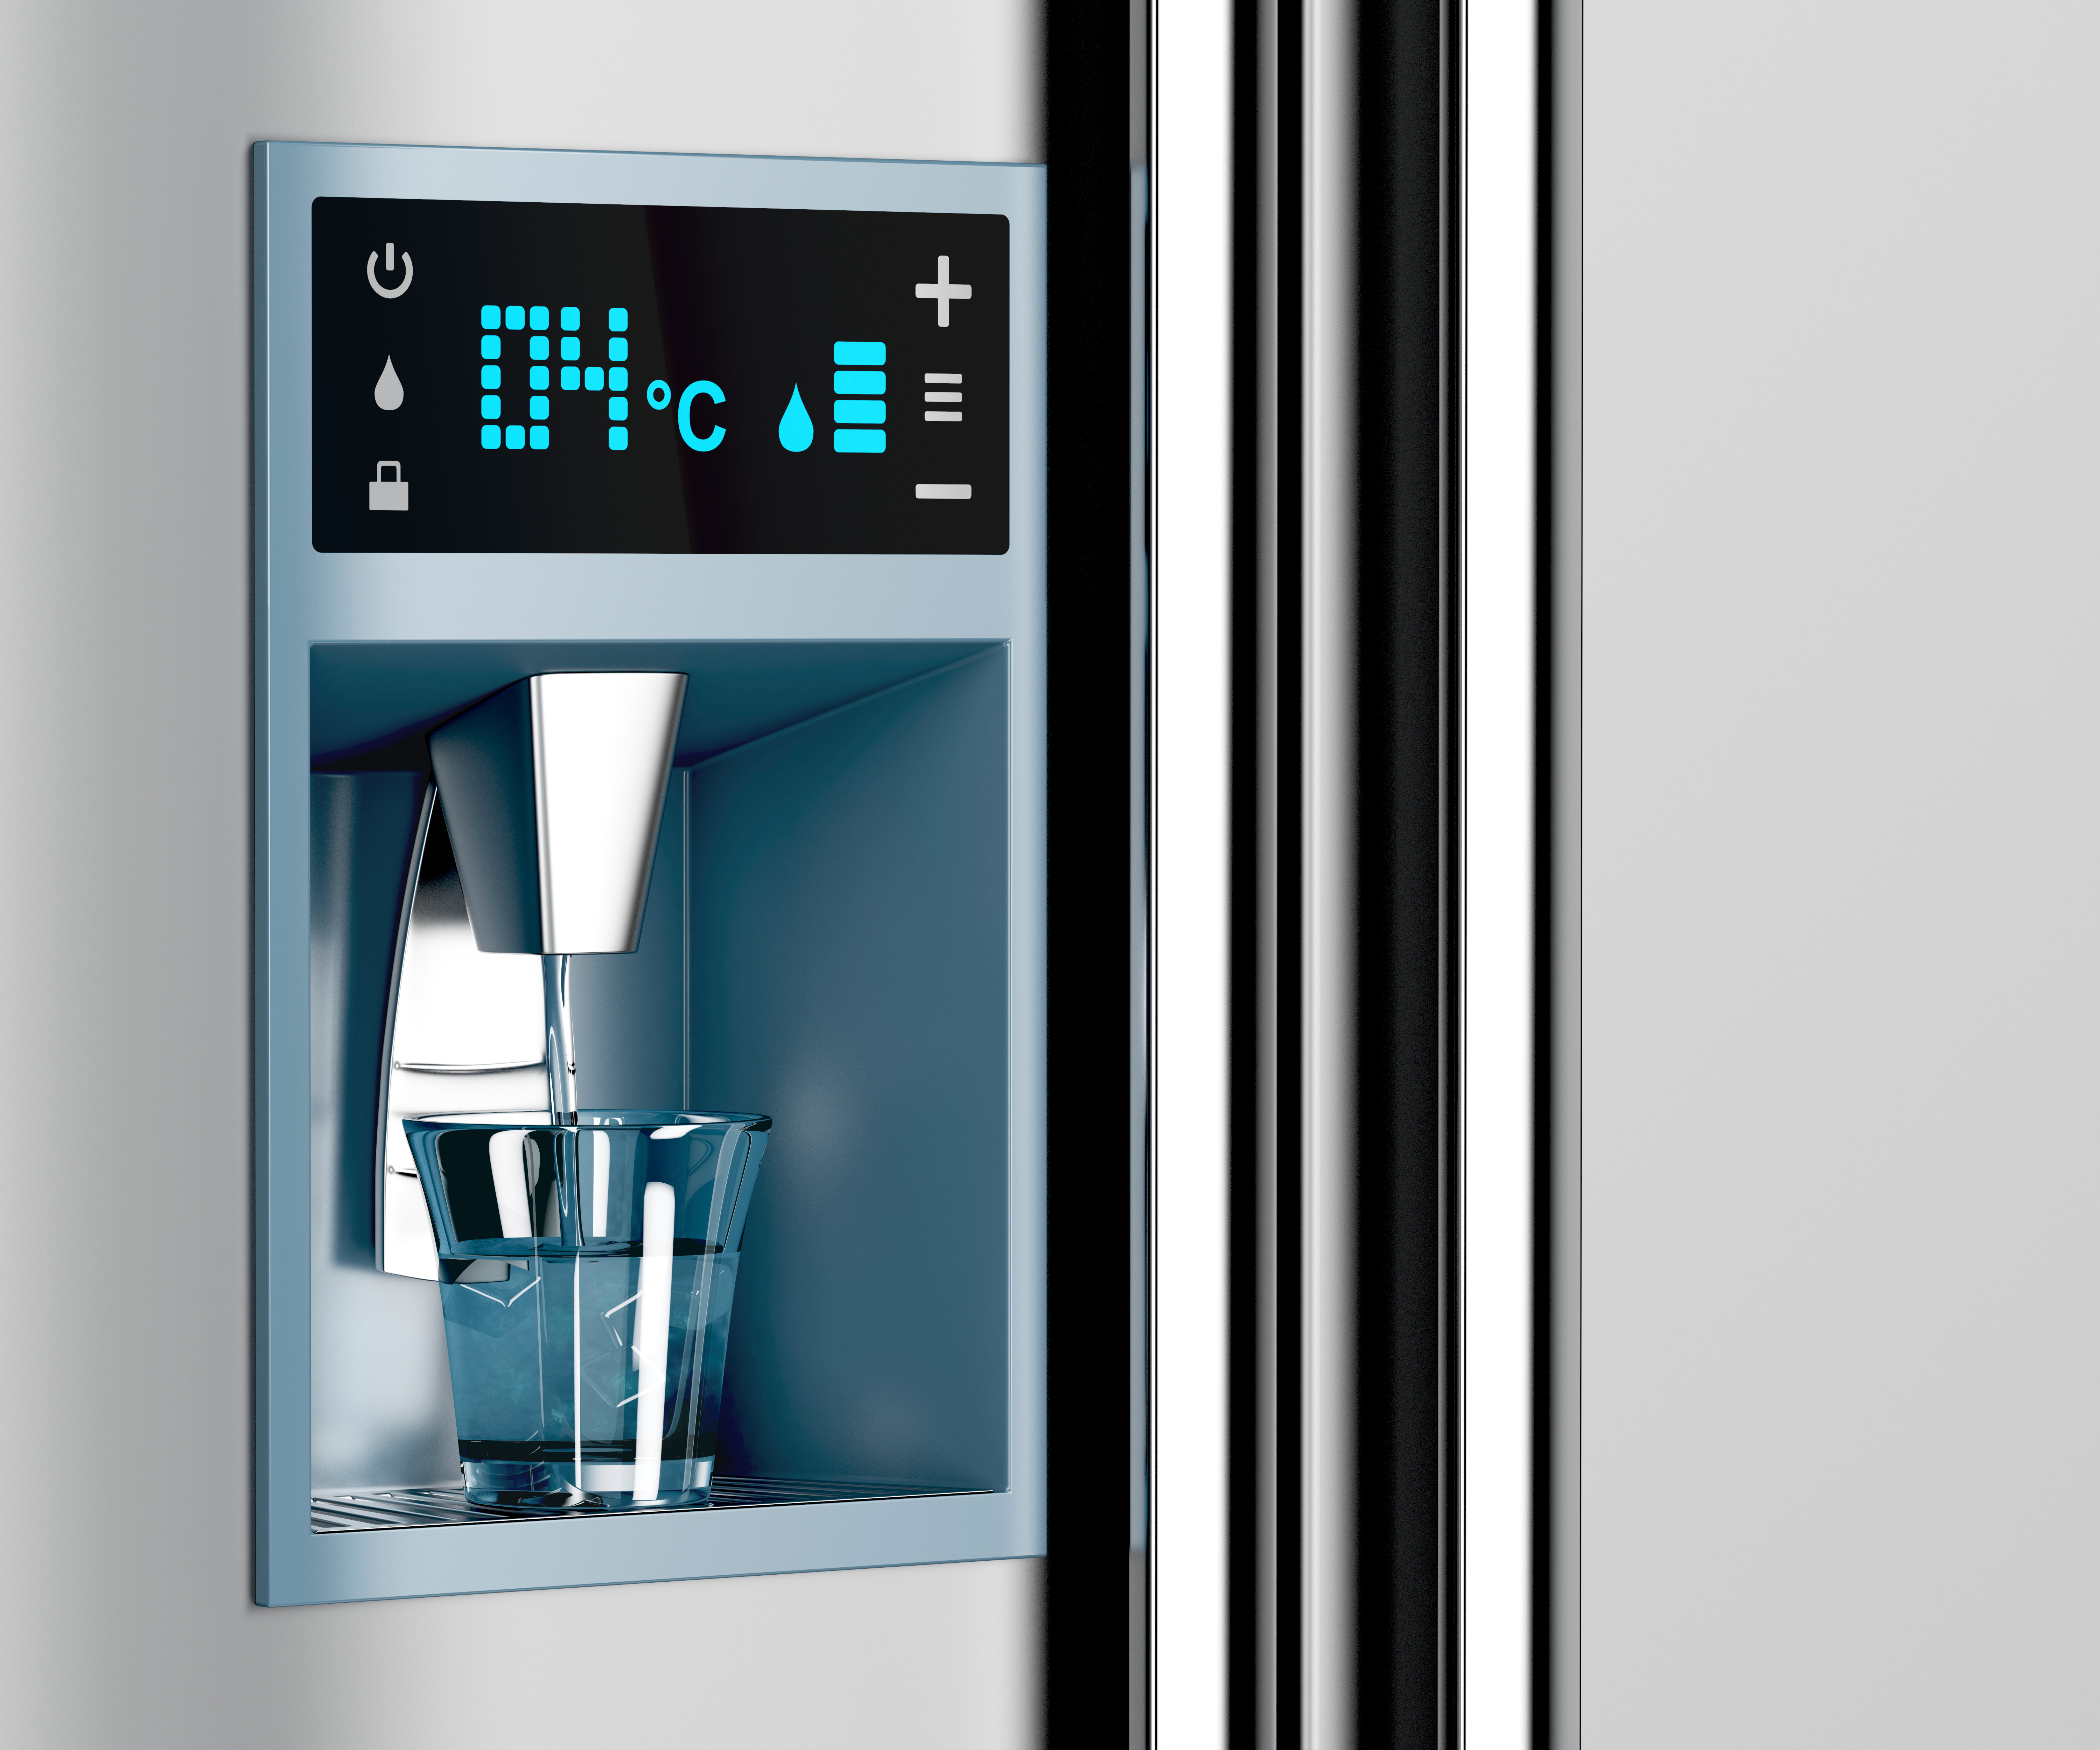 Canva - Filling Glass from Water Dispenser